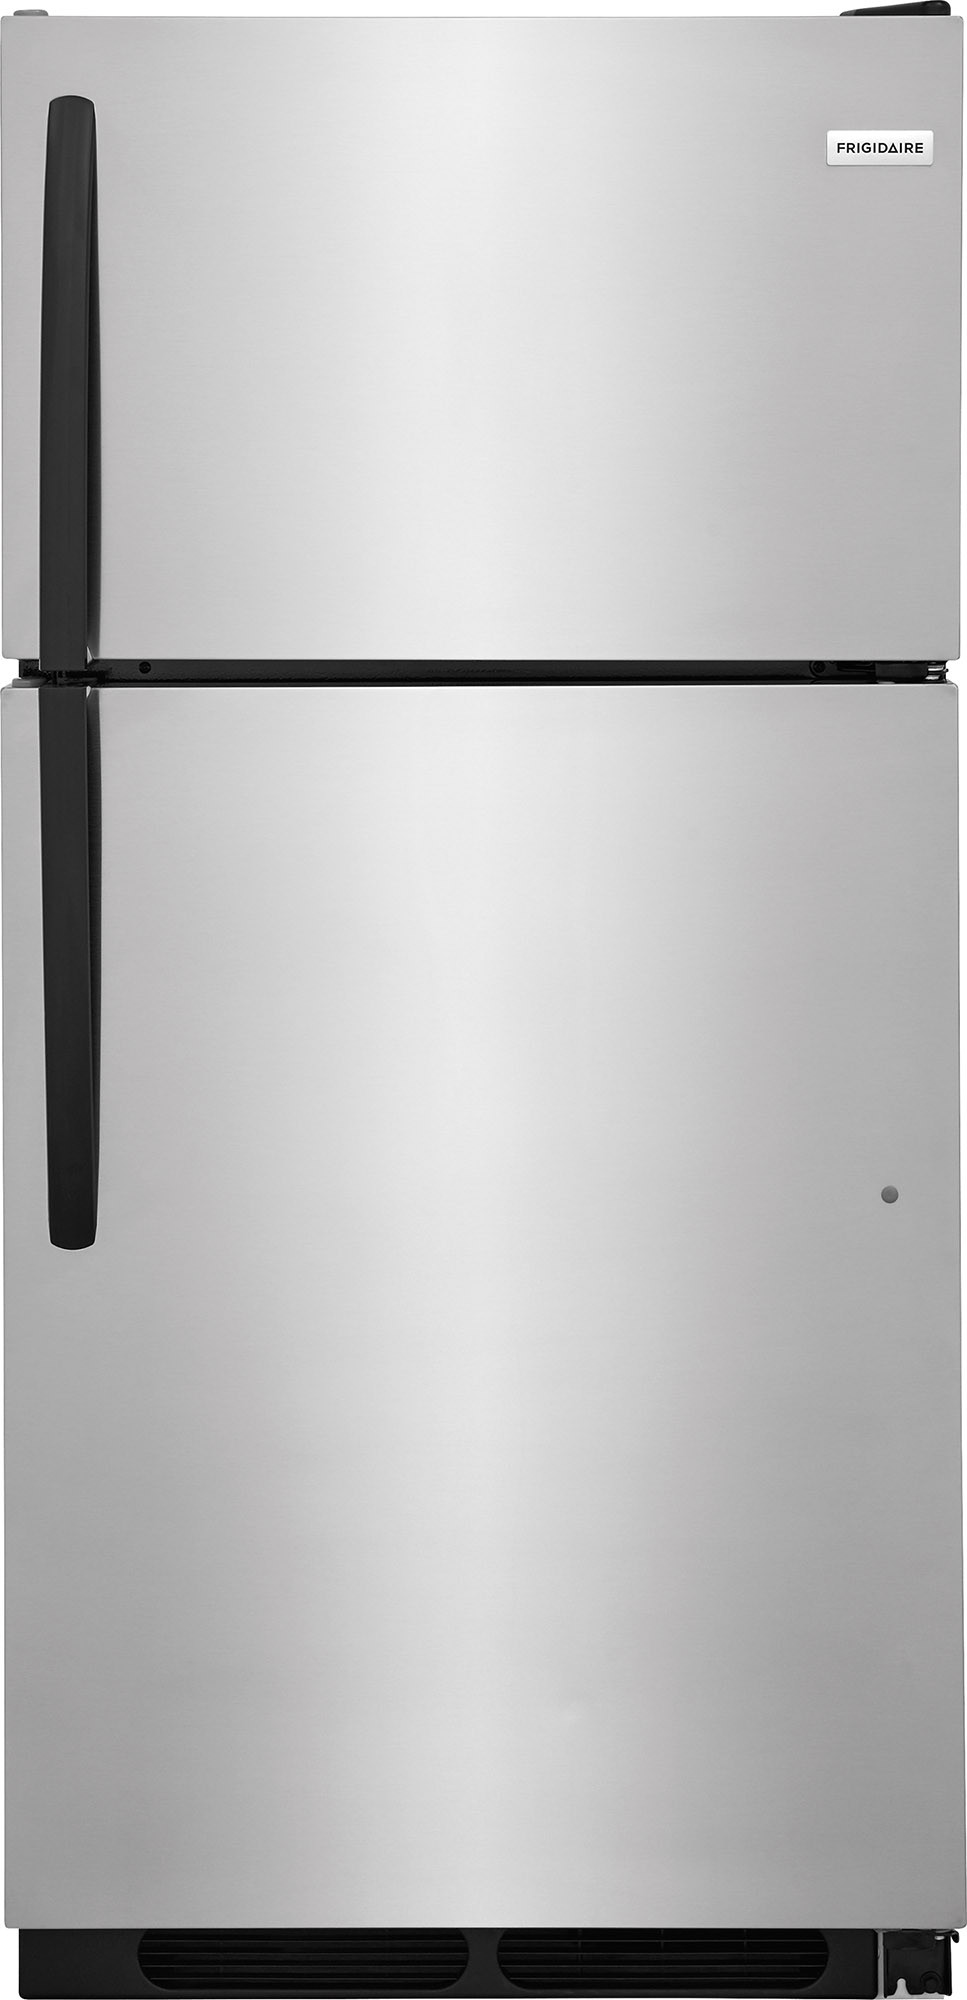 Frigidaire Ffht1514ts 28 Inch Top Freezer Refrigerator With Store Avanti Wiring Diagram Image Disclaimer